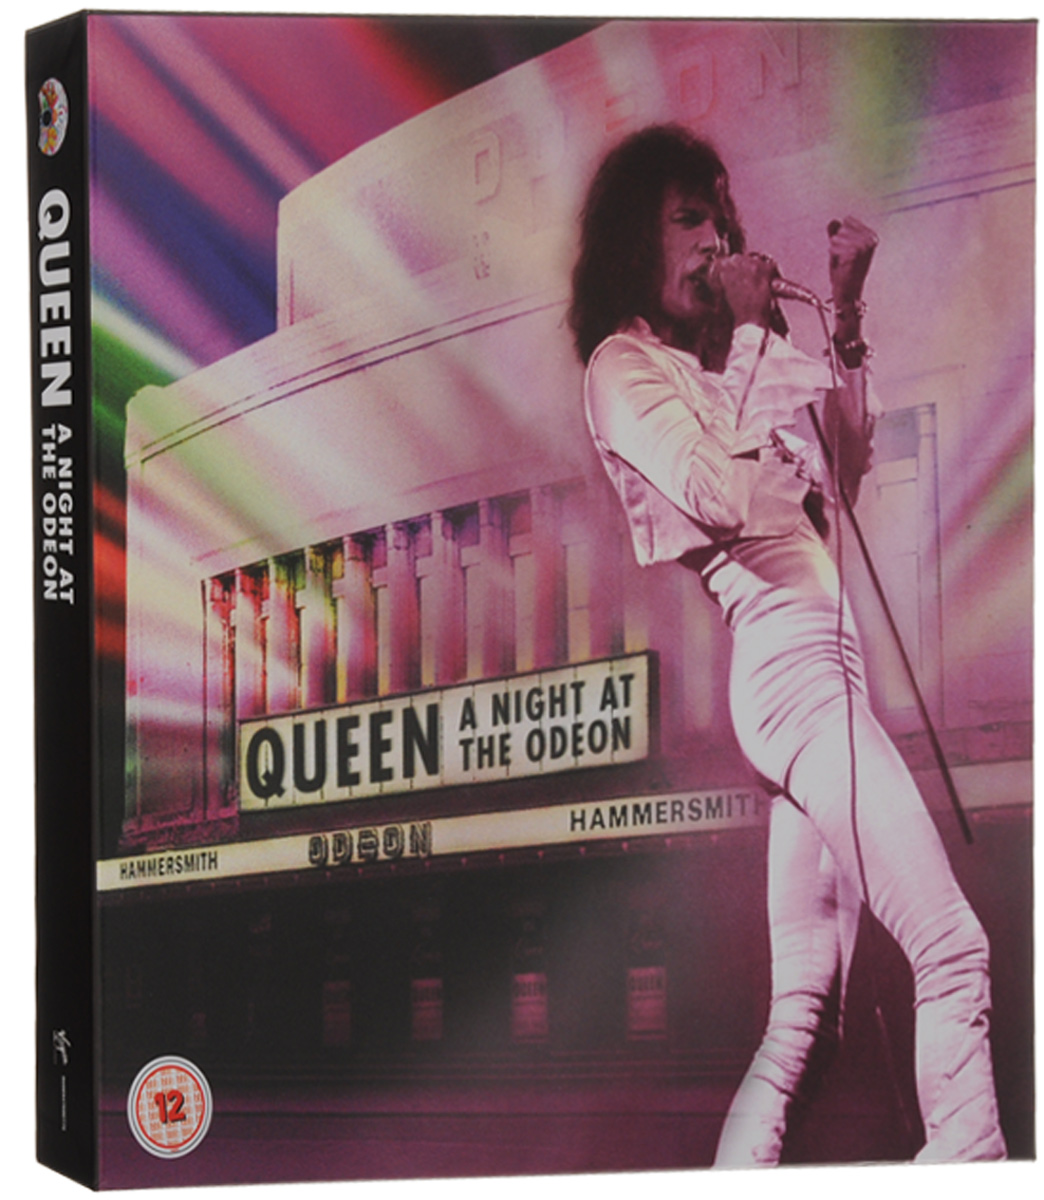 Queen Queen. A Night At The Odeon. Anniversary Limited Edition (CD + LP + DVD + Blu-ray) toto tour live in poland 35th anniversary blu ray